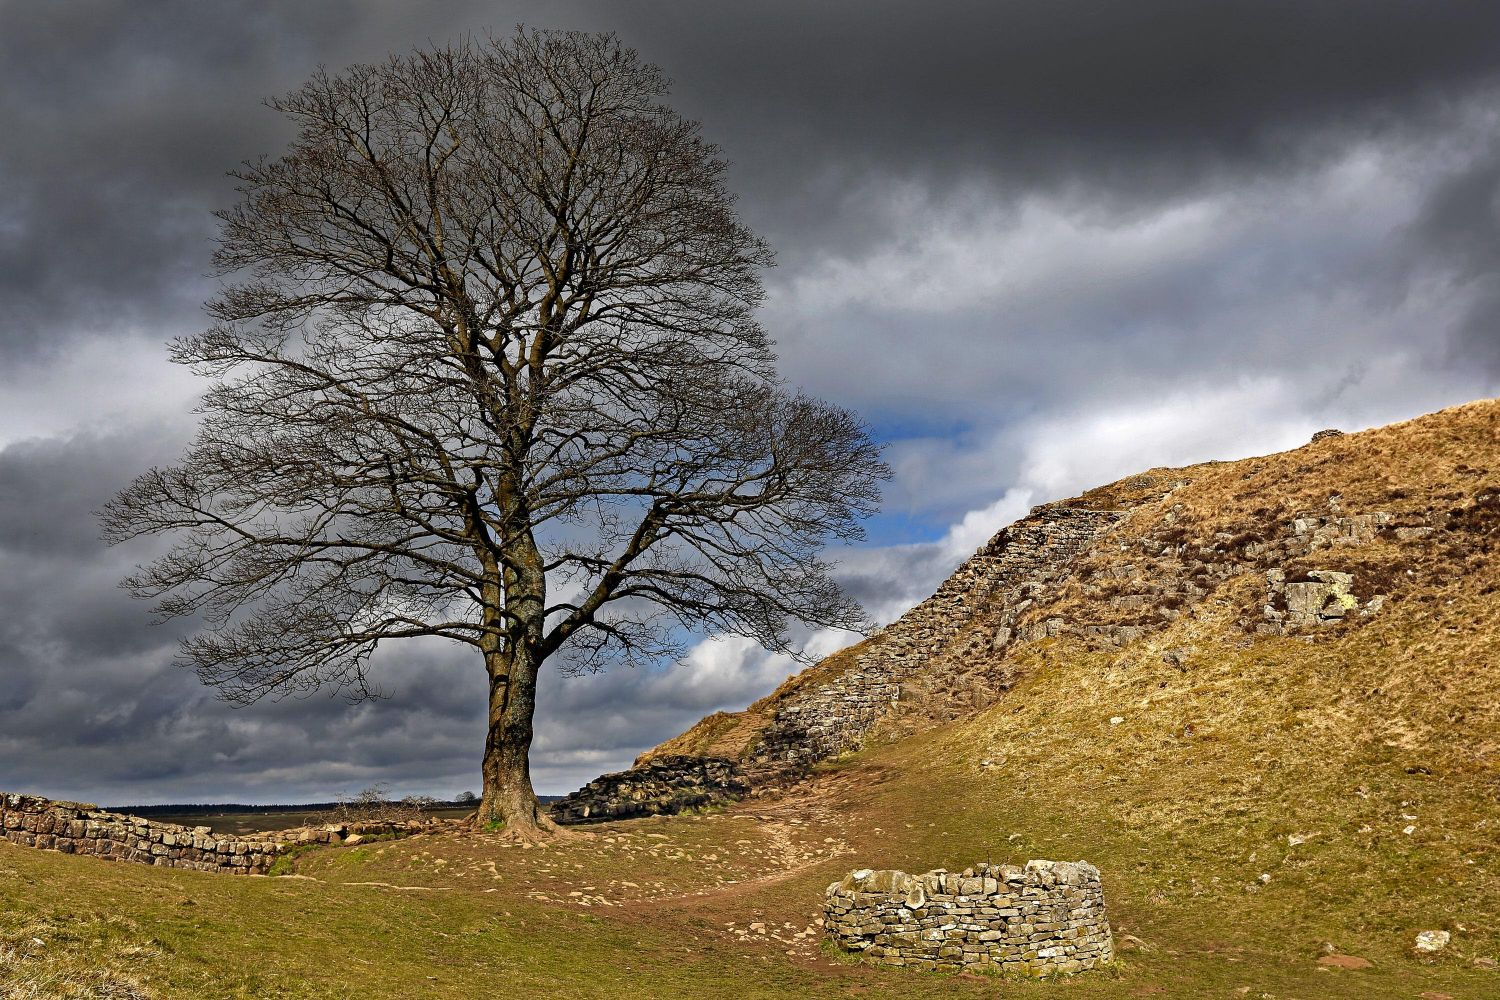 Sycamore Gap tree, near Milecastle 39 on Hadrian's Wall.